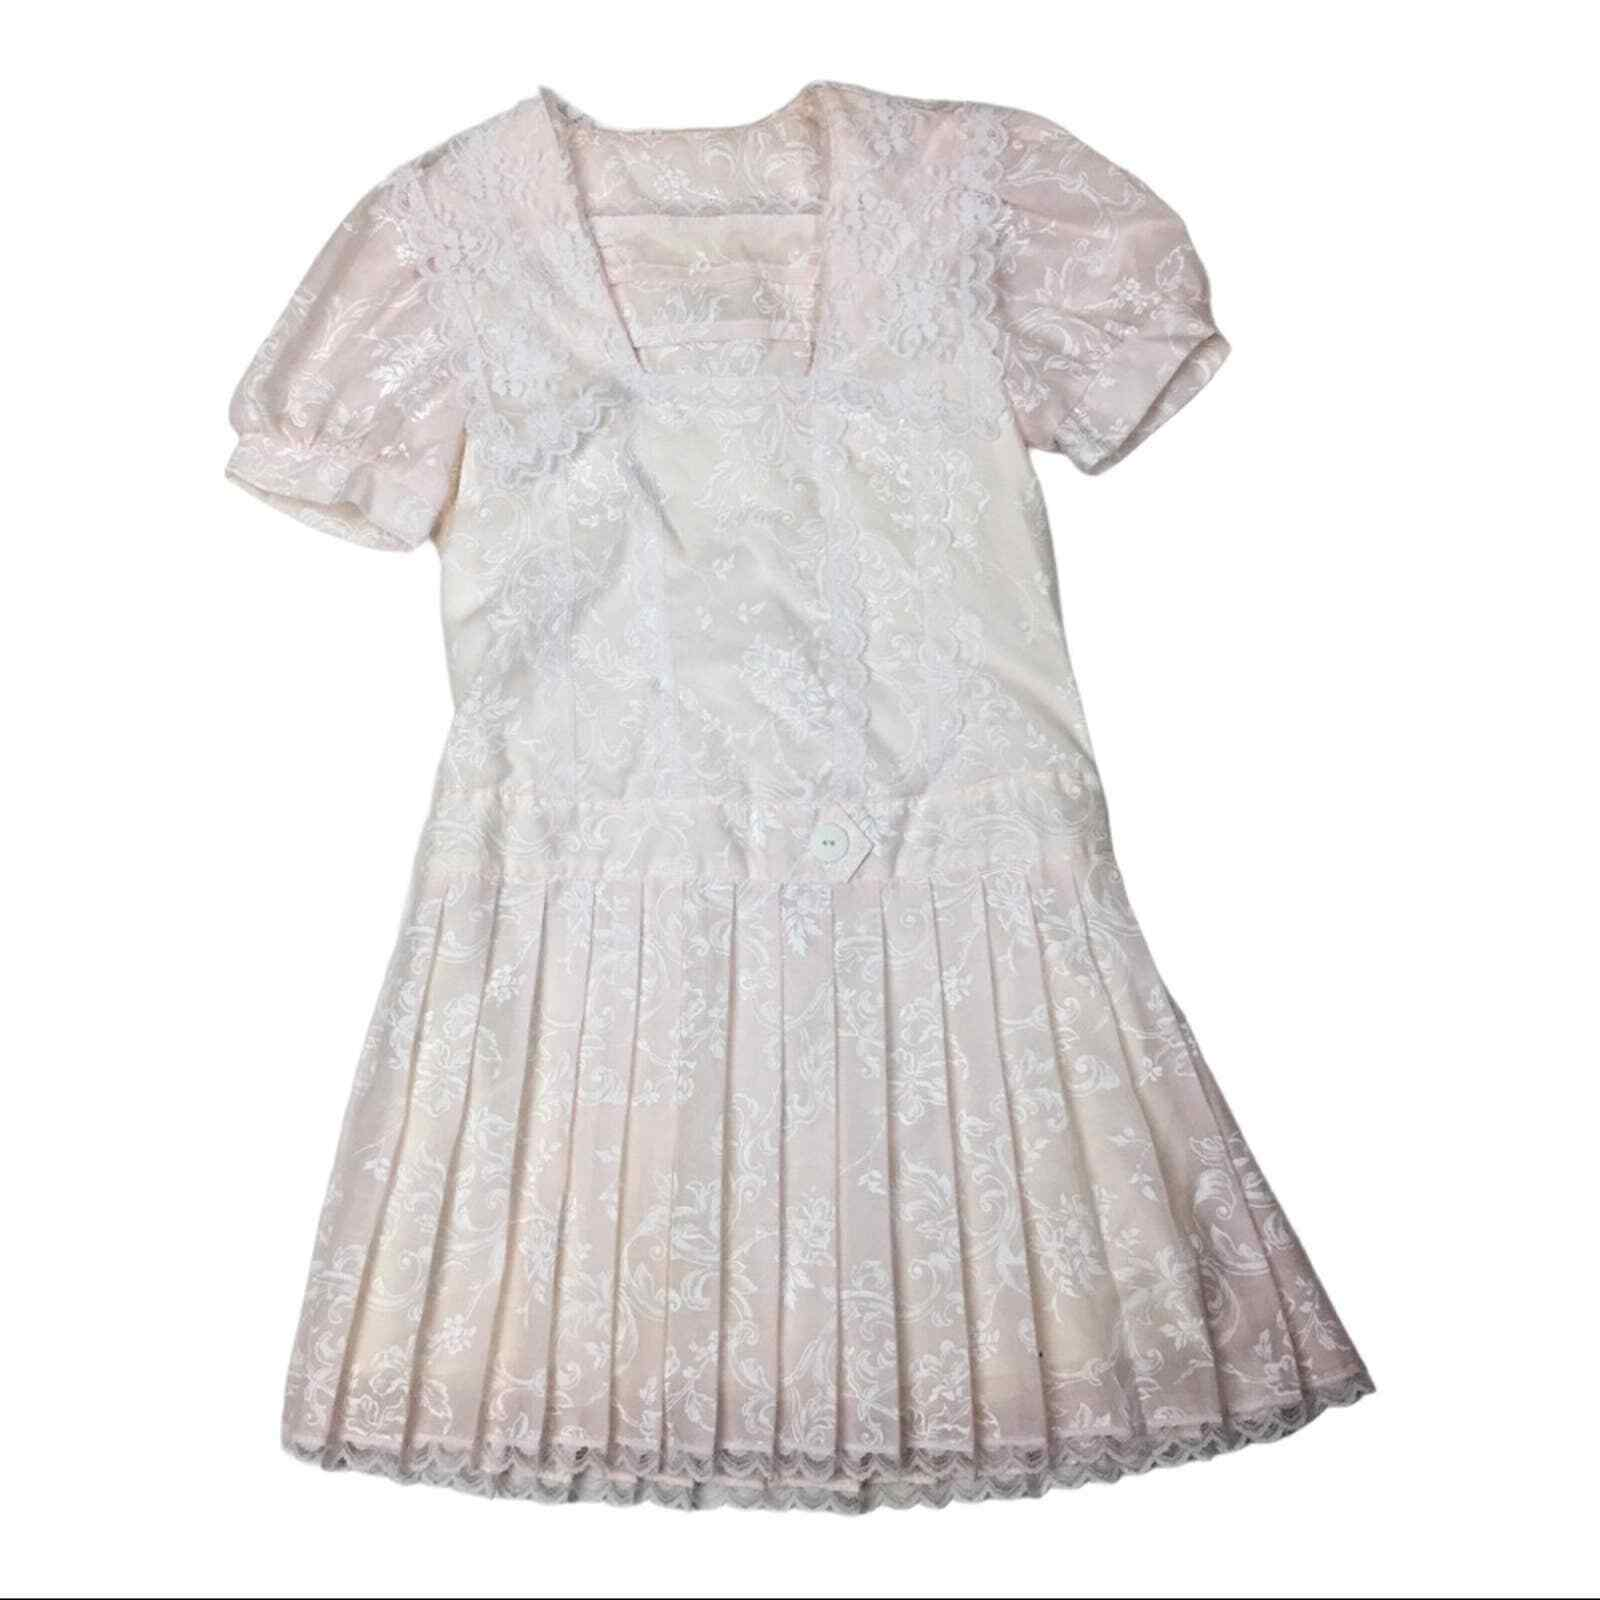 Vintage Gunne Sax lace and floral pleated skirt g… - image 1